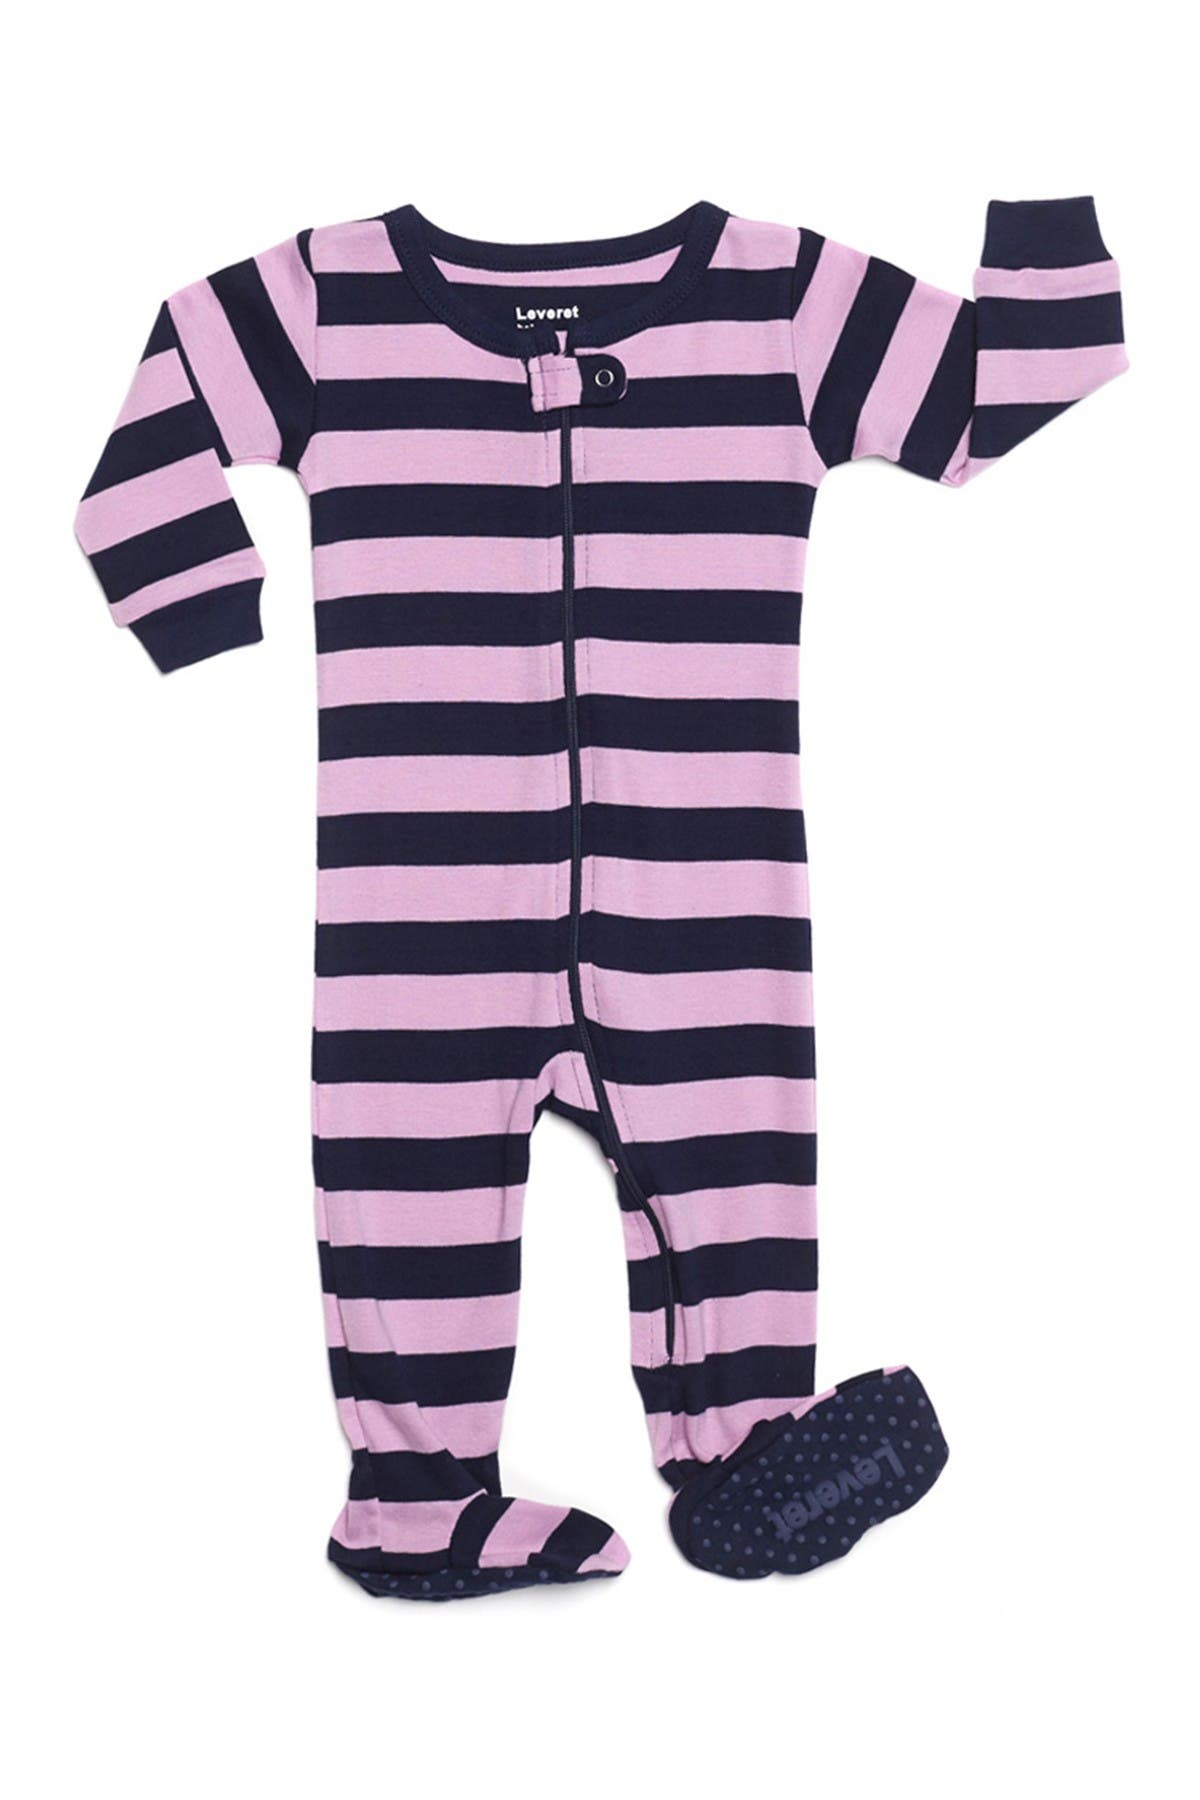 Image of Leveret Purple & Navy Striped Footed Jumpsuit